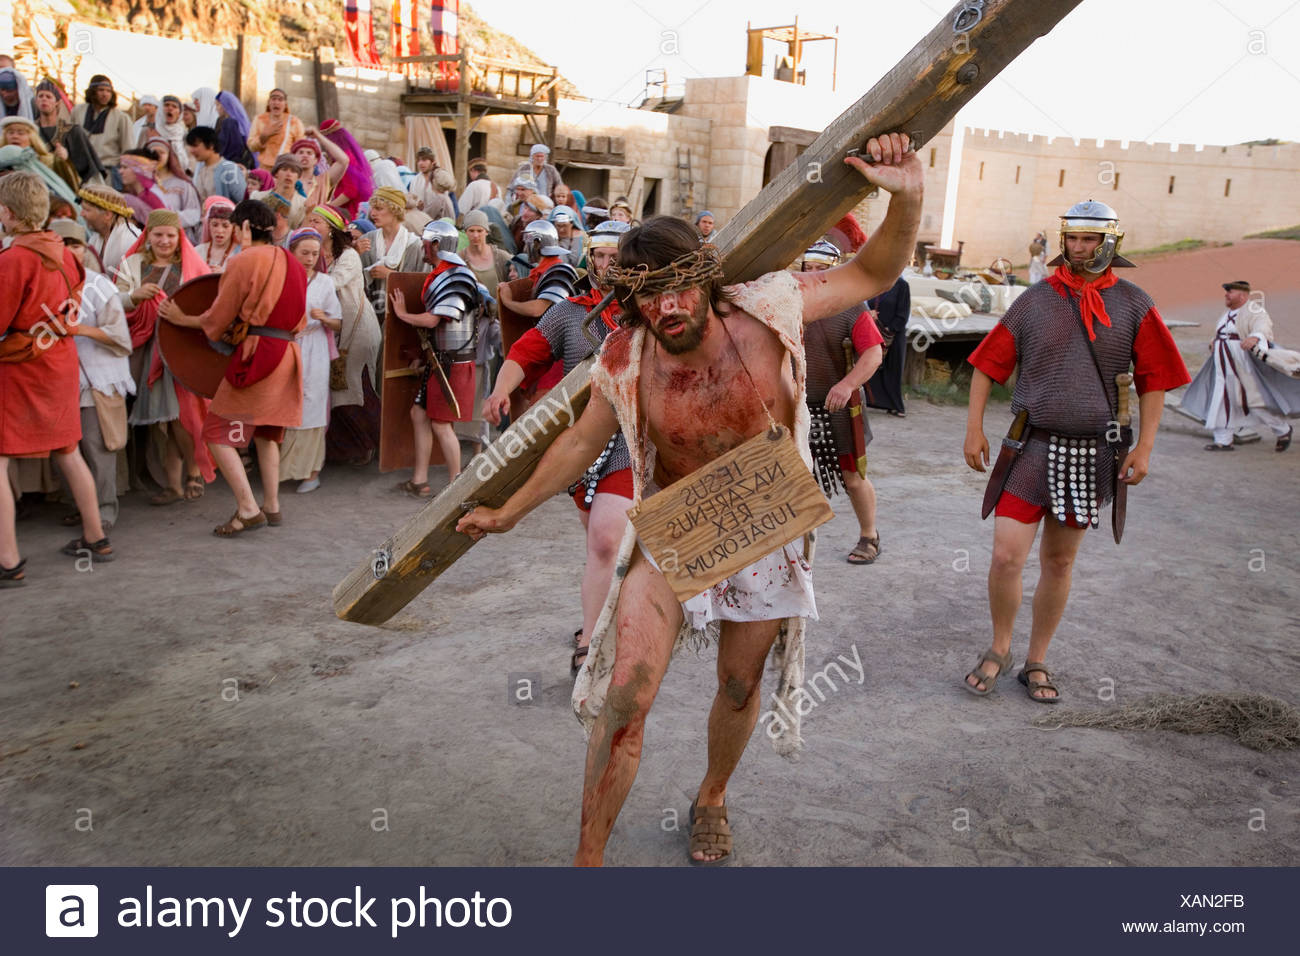 Jesus carrying the cross - Stock Image